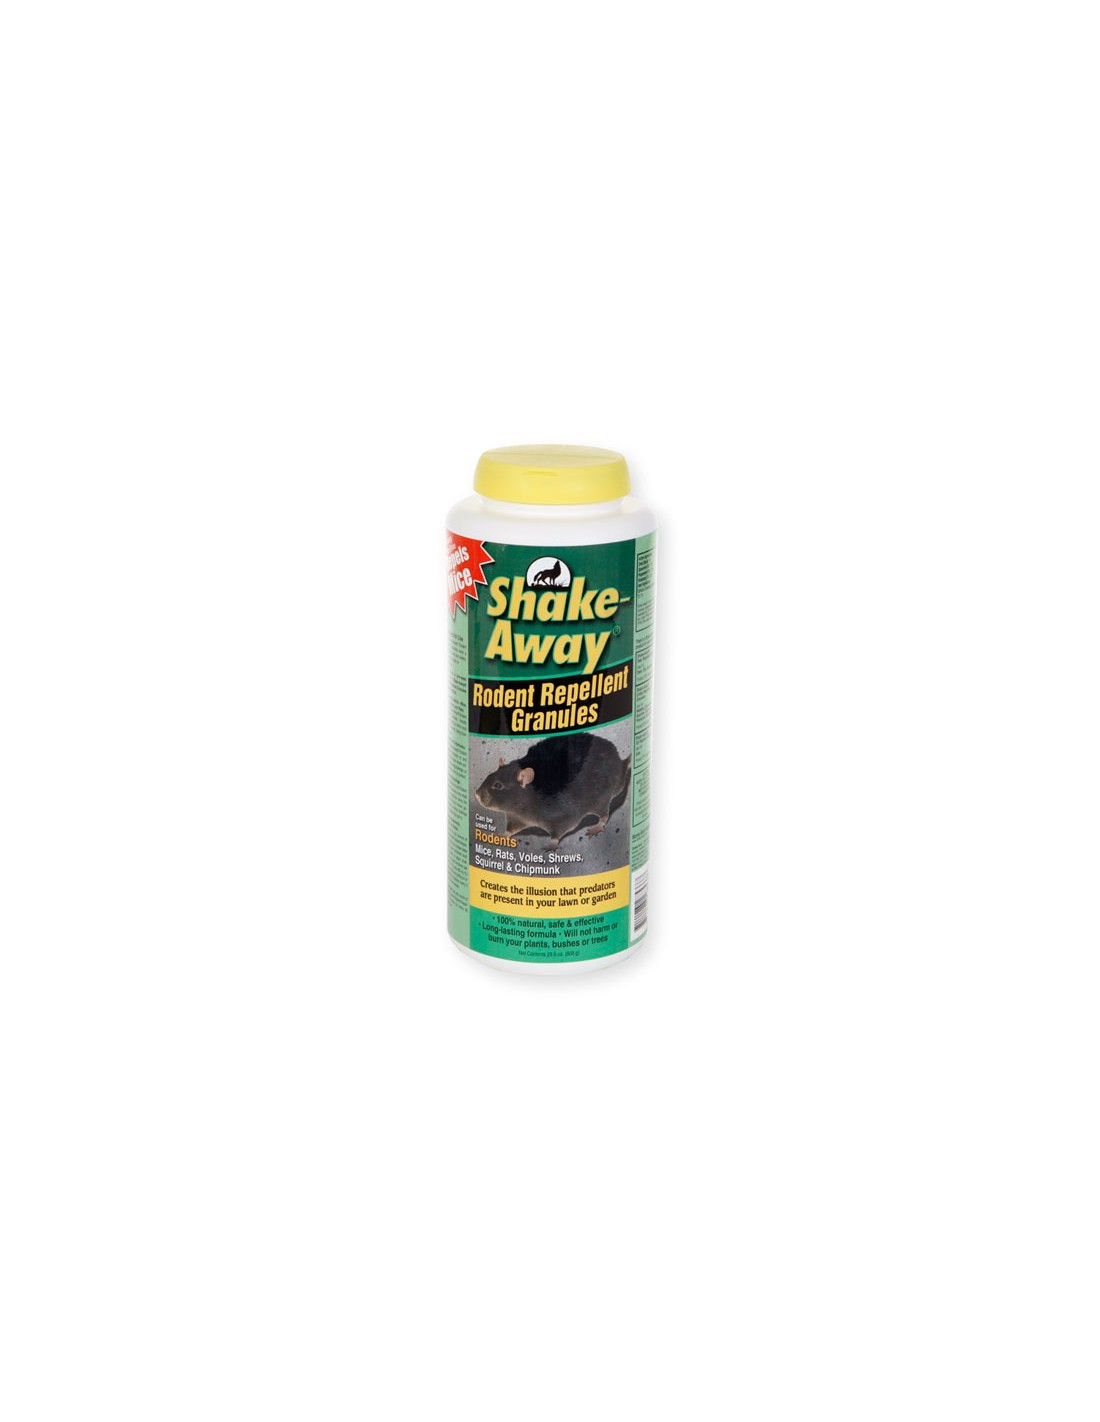 Shake Away Rodent Repellent Granules Questions & Answers